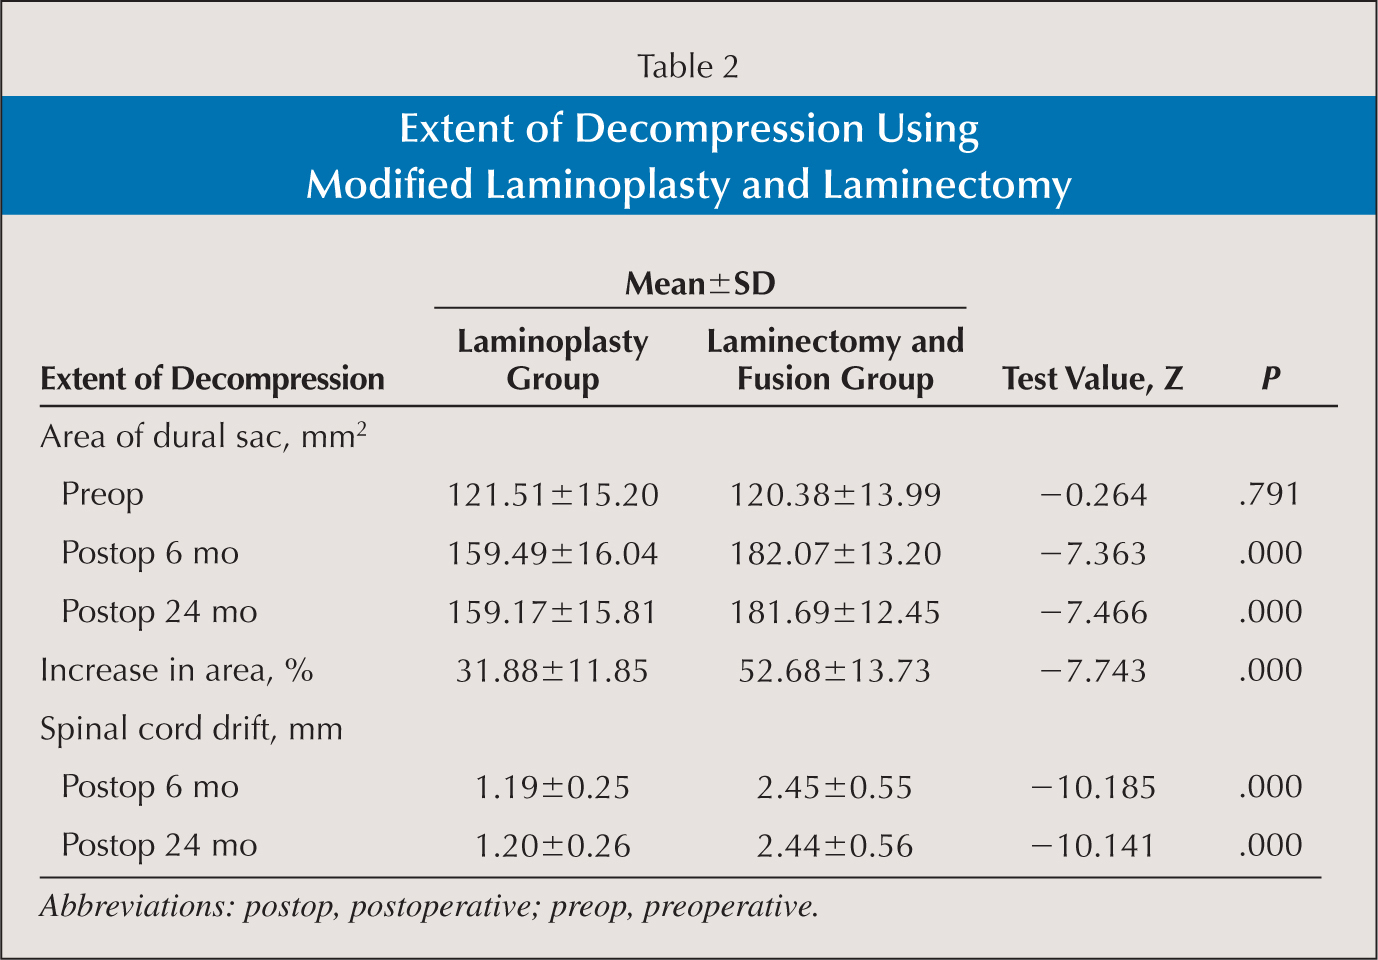 Extent of Decompression Using Modified Laminoplasty and Laminectomy